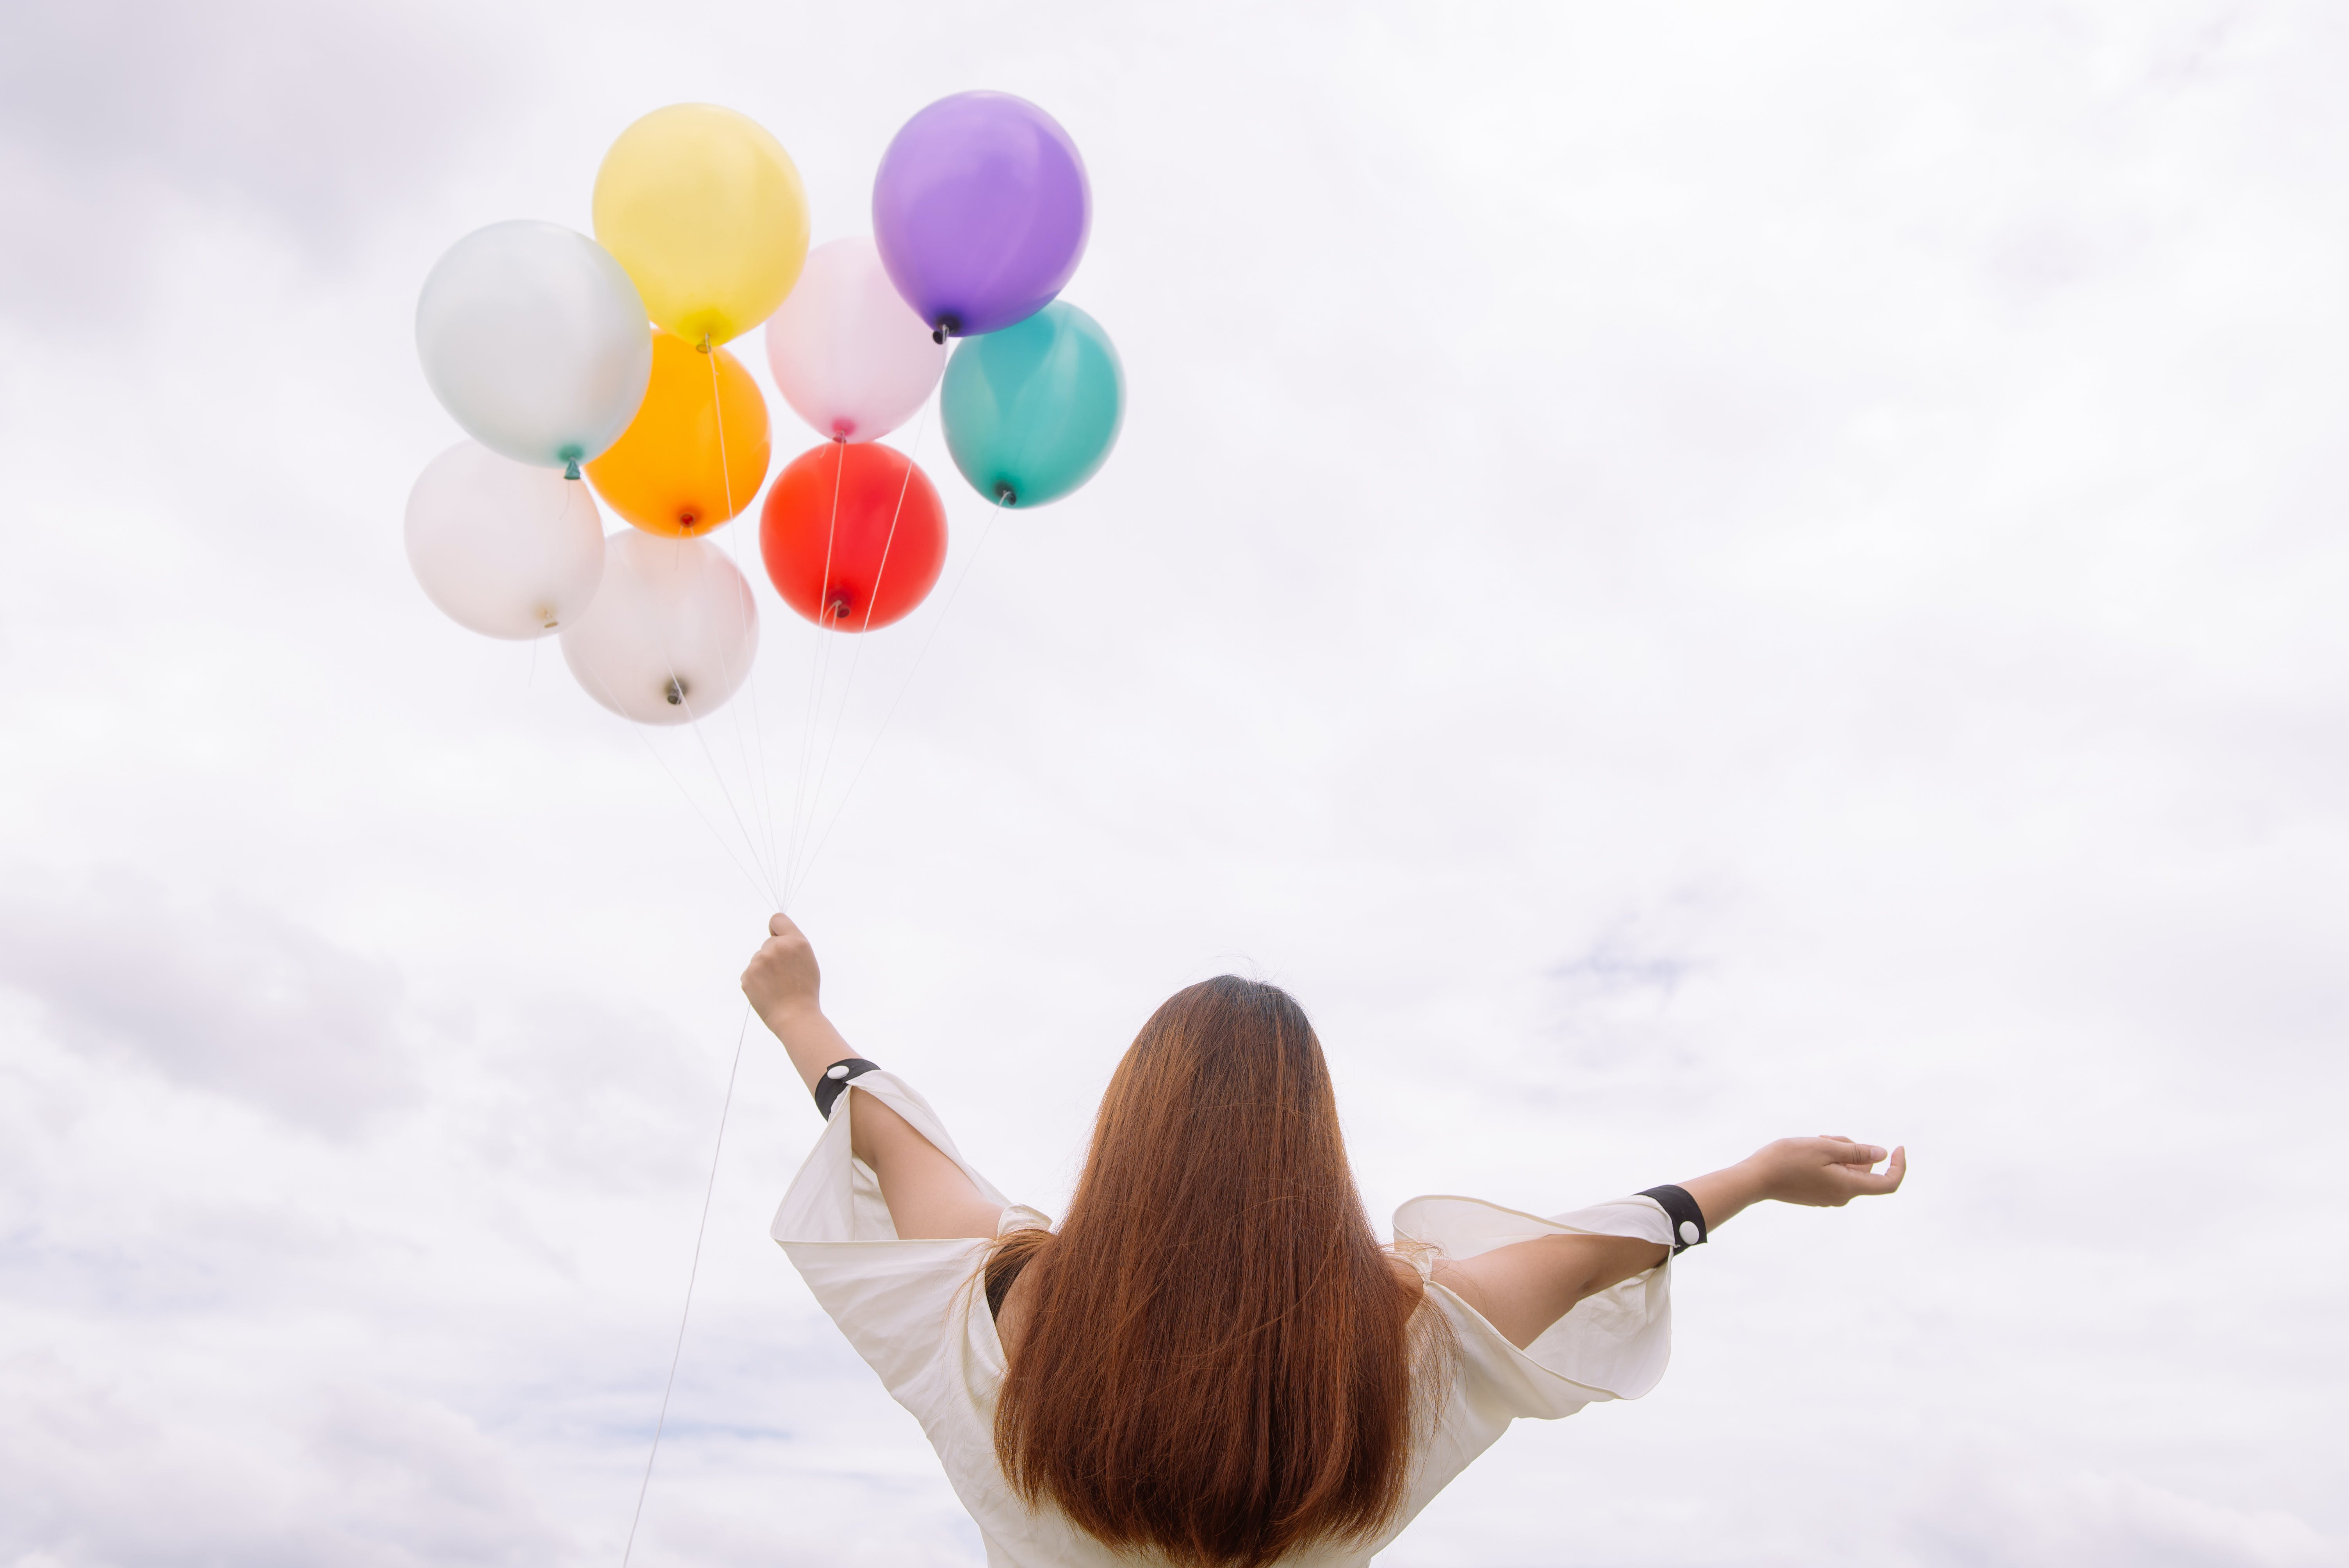 Worm's-eye View of Woman Holding Balloons